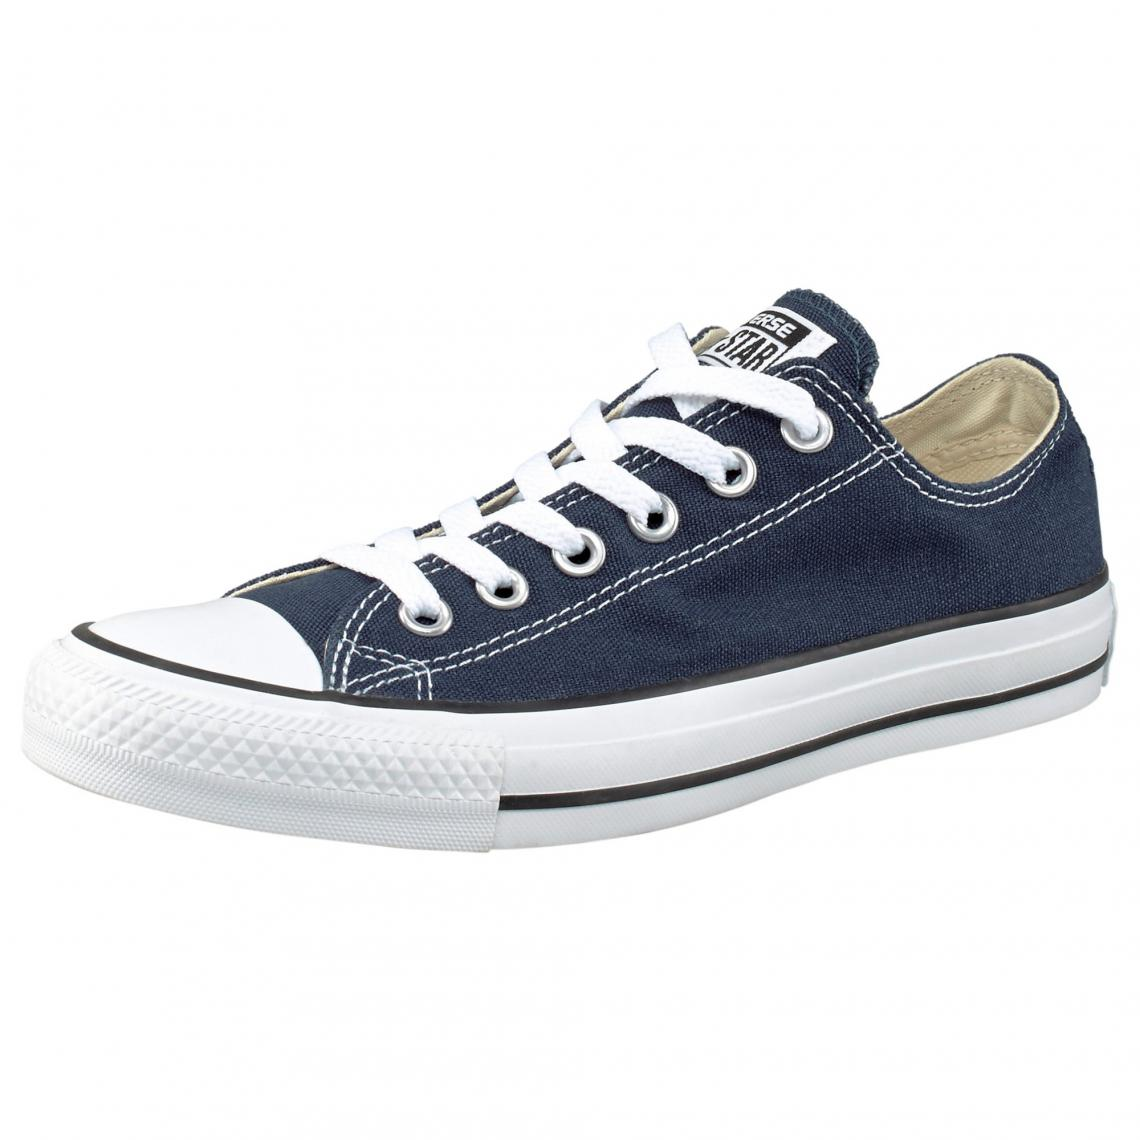 Converse All Star Ox tennis basses � lacets homme - Bleu - 3Suisses